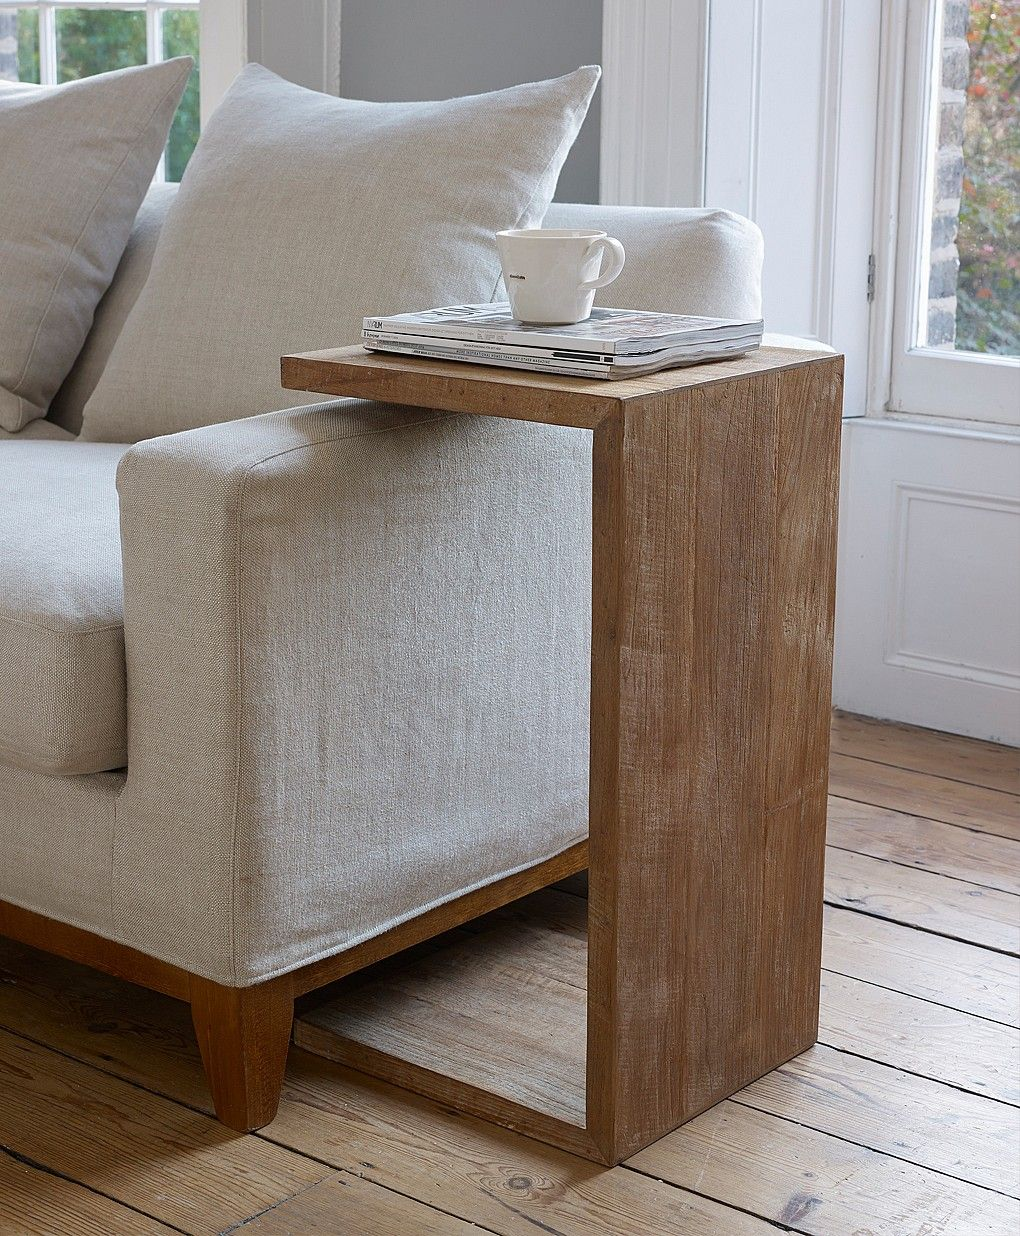 Pleasing Pin By Rebecca Lang On For The Home Diy Sofa Table Sofa Ibusinesslaw Wood Chair Design Ideas Ibusinesslaworg